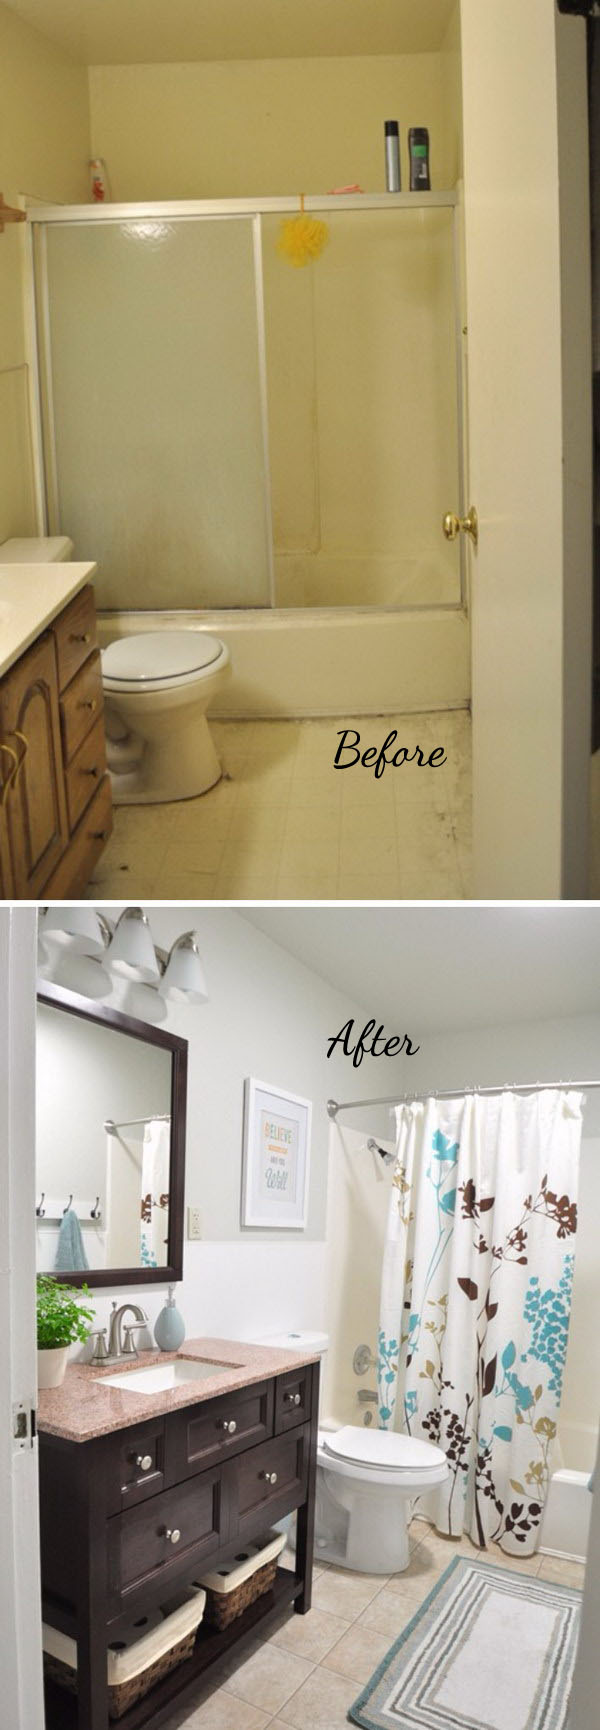 33 inspirational small bathroom remodel before and after - diy design & decor